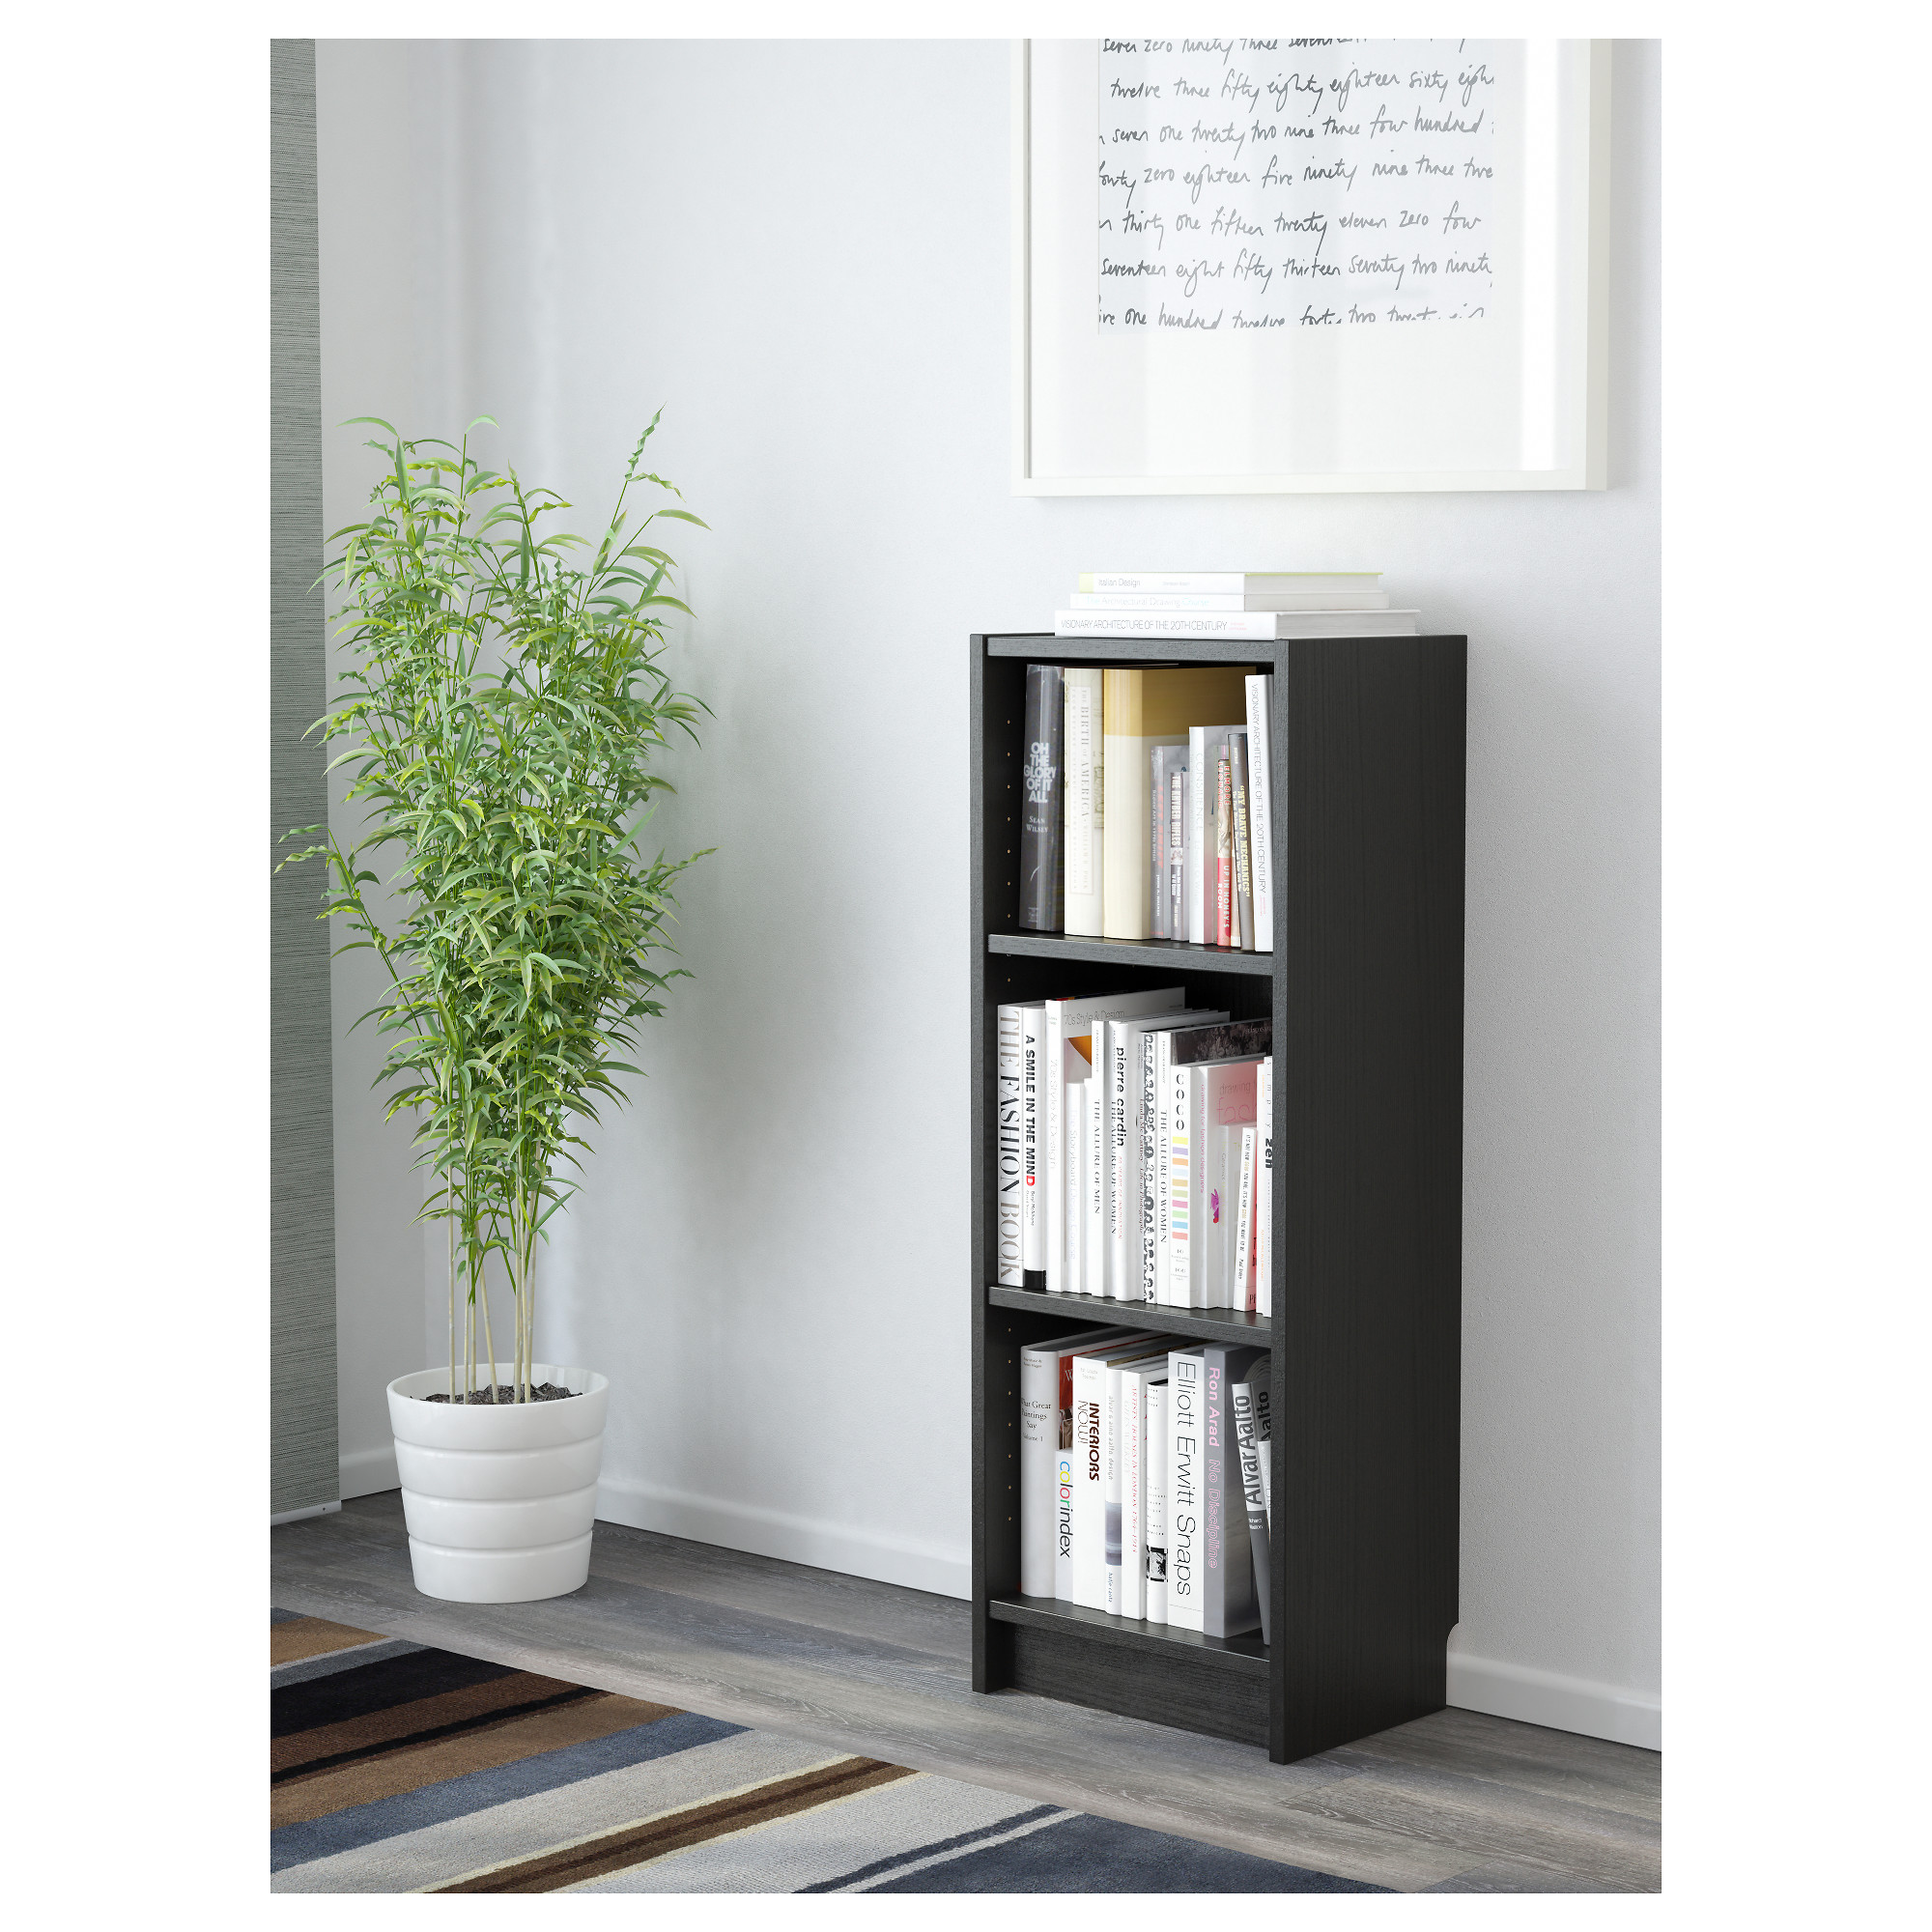 tables porter white open bookshelf drawers bedside skinny round small black with brown table nightstand wood